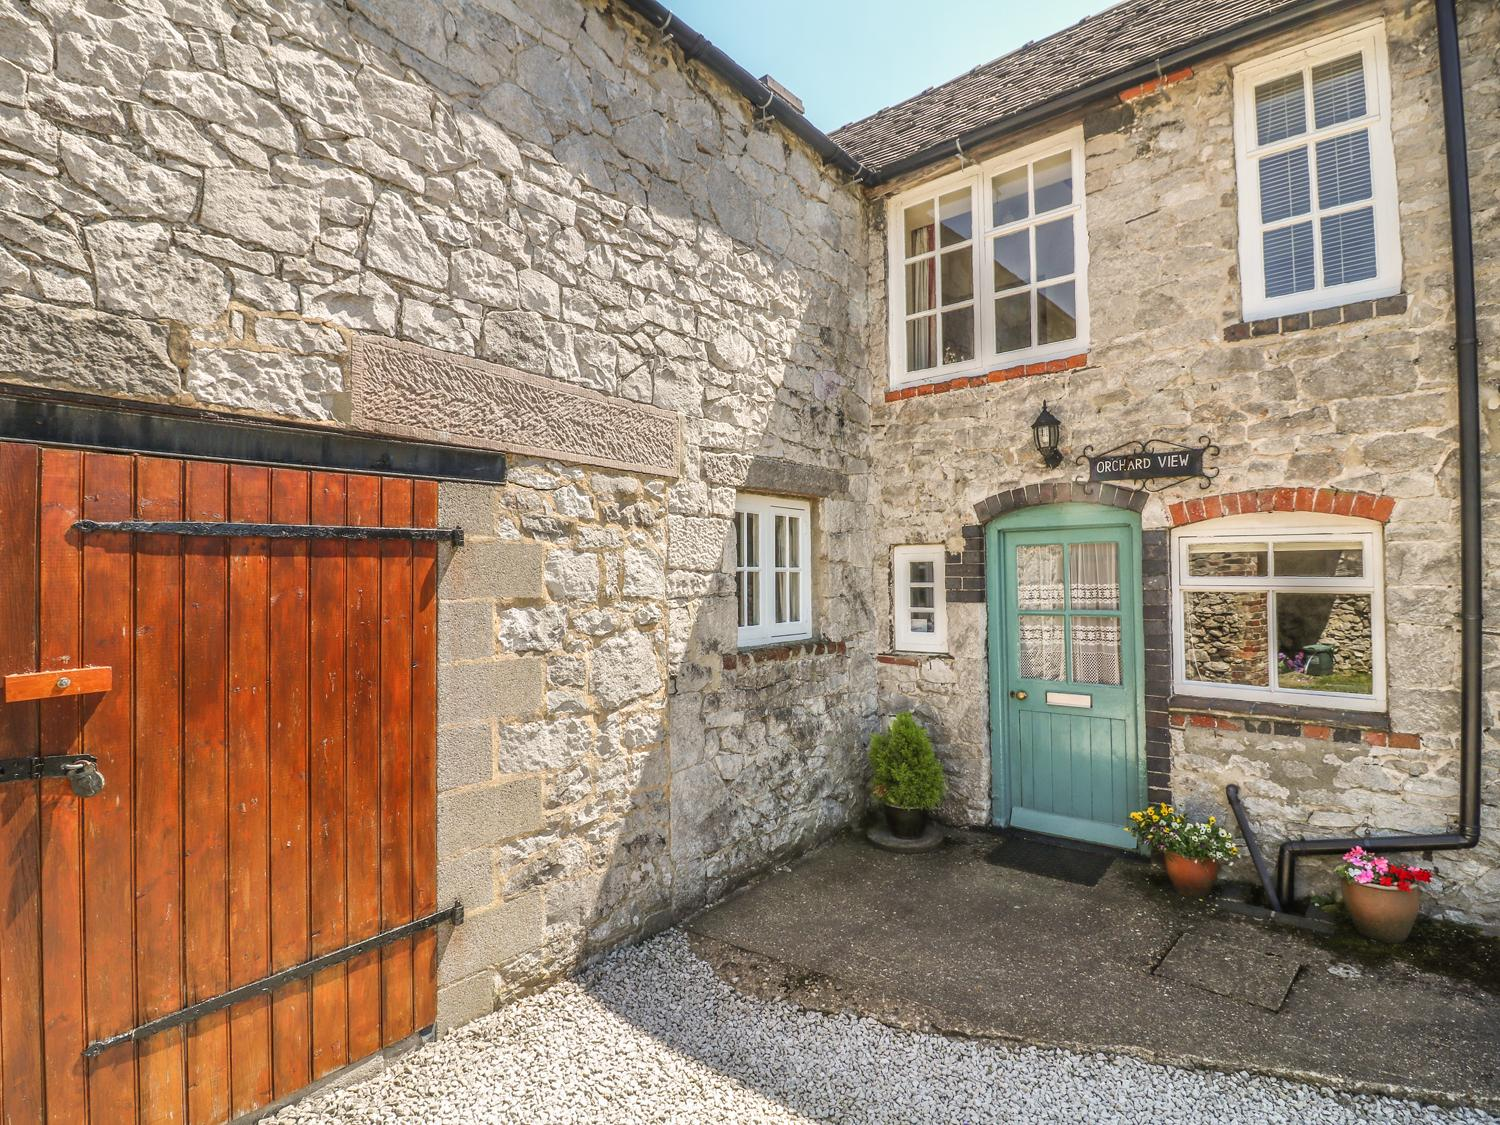 Holiday Cottage Reviews for Orchard View - Self Catering Property in Parwich, Derbyshire